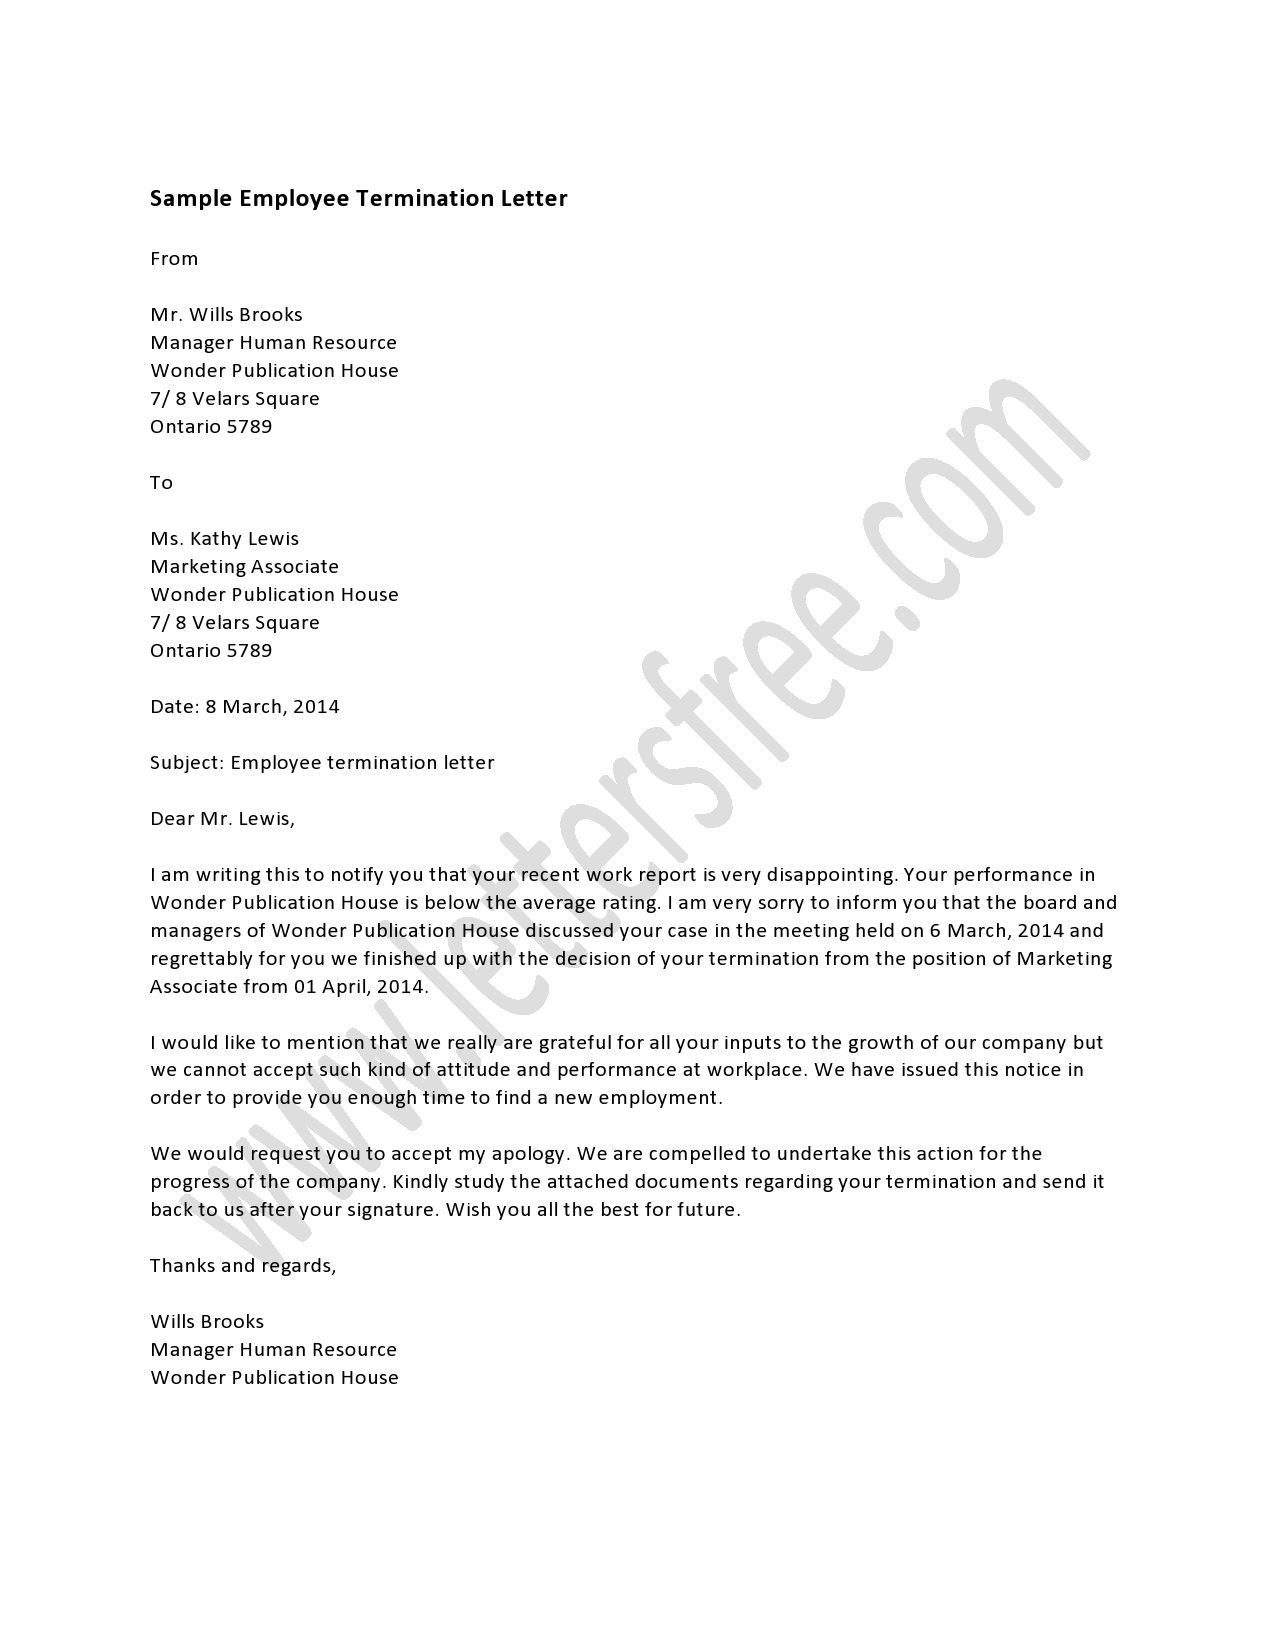 Employee termination letter is a template used by companies to employee termination letter is a template used by companies to outline the terms of an employees mitanshu Gallery